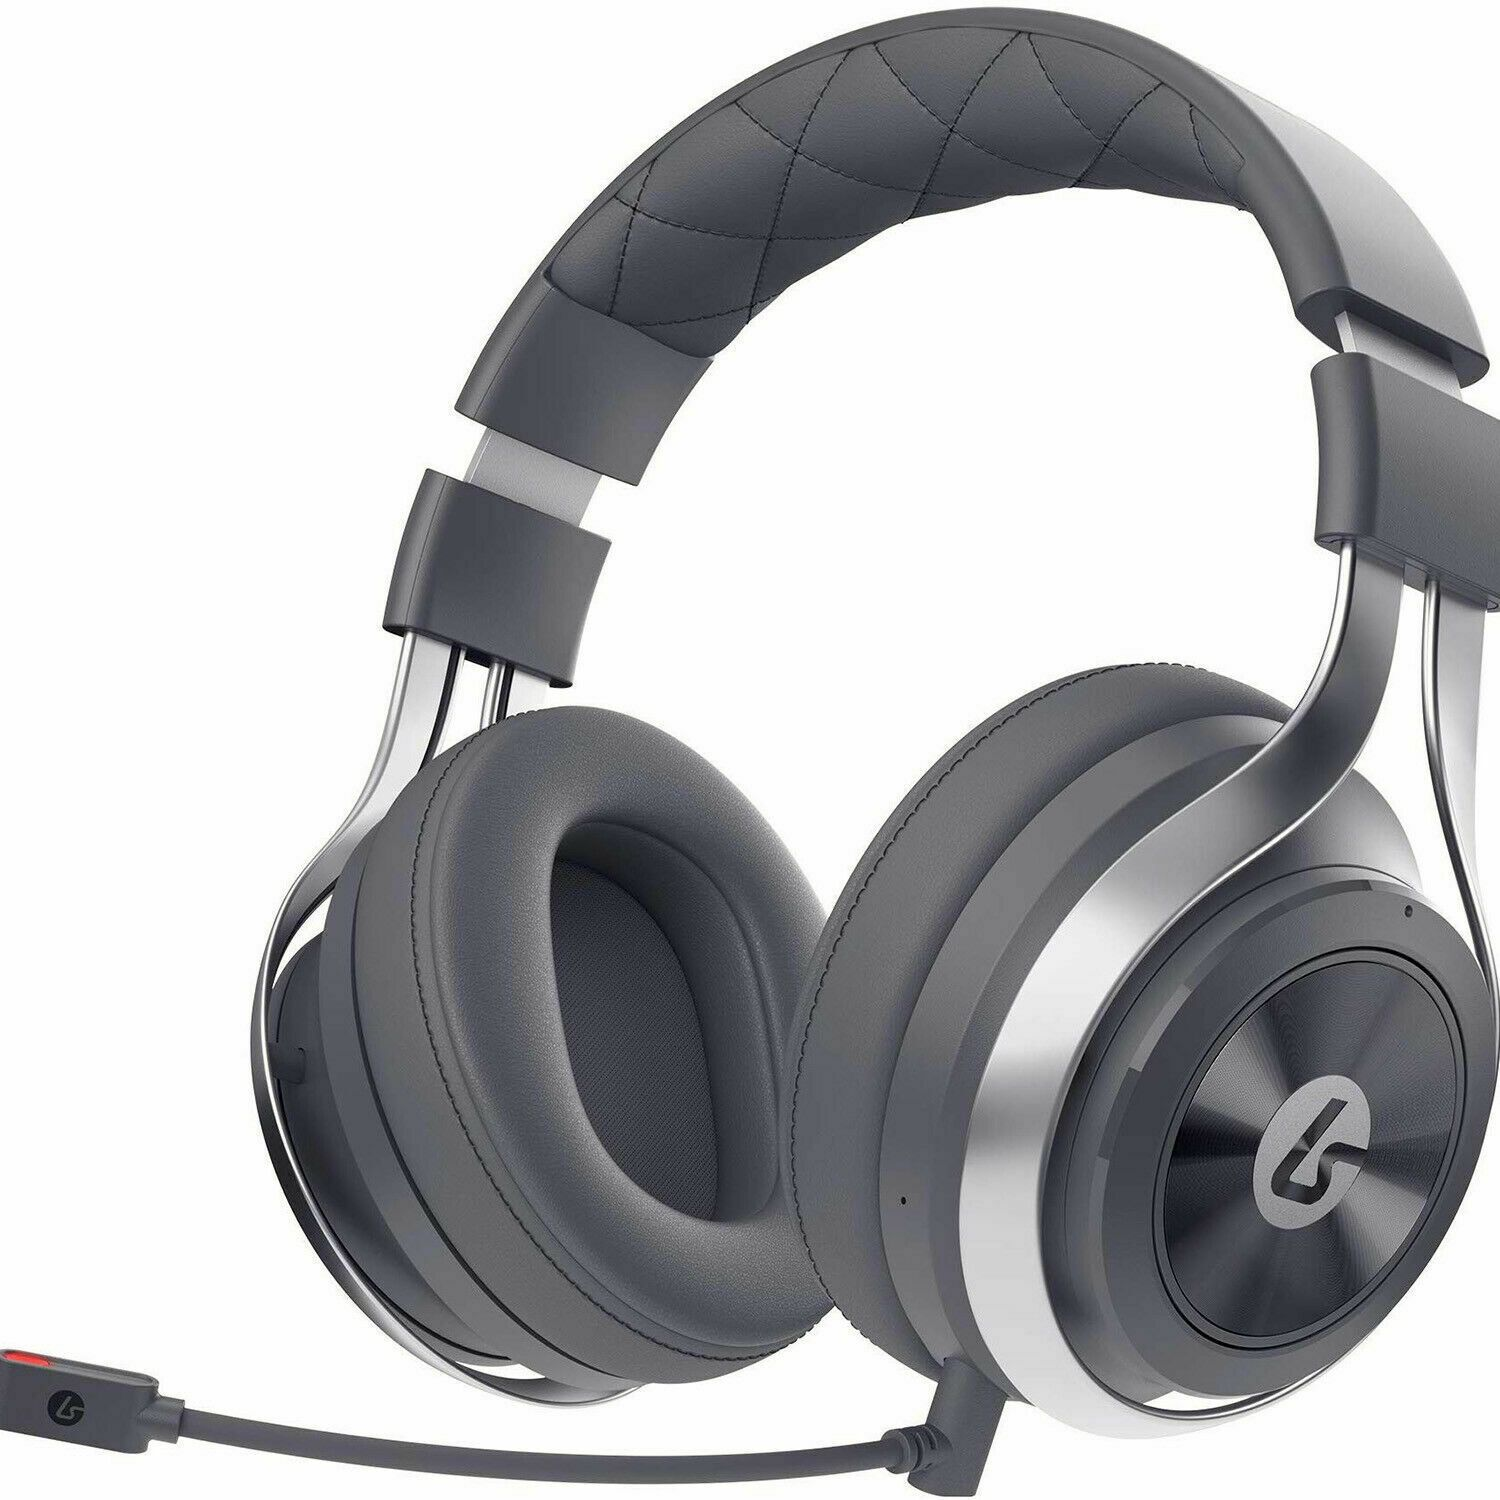 Lucidsound Ls31 Wireless Gaming Headset For Ps4 Xbox One Pc Nintendo Switch Buy It Now On Ebay Lucidsound Wireless Gamingheadsets Gamingheadset Cosas